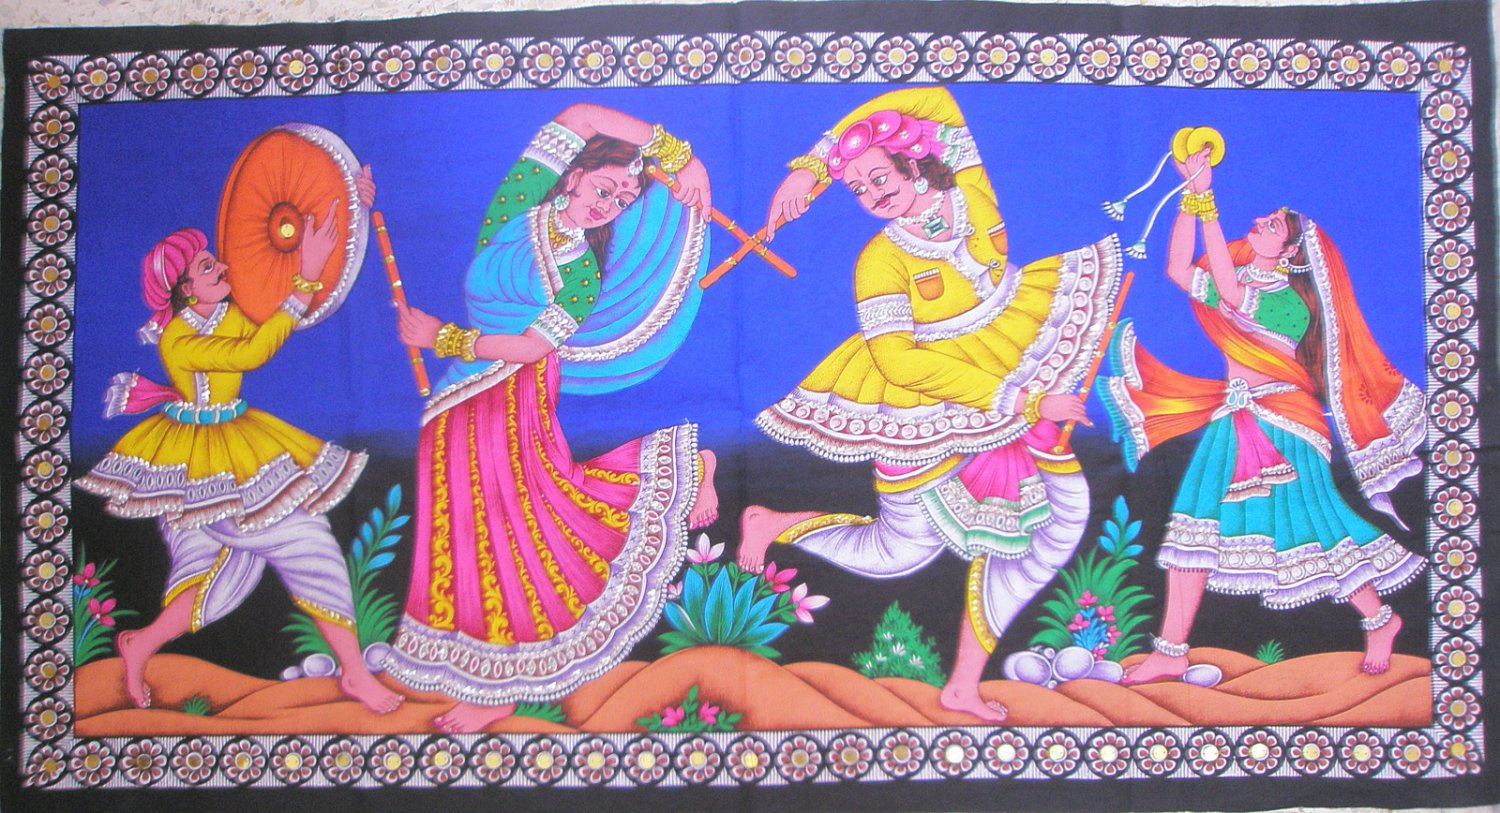 Indian Decorative Tapestry Rajasthan Folk Tribal Dance  Sequin Wall Hanging Decor Ethnic Art India